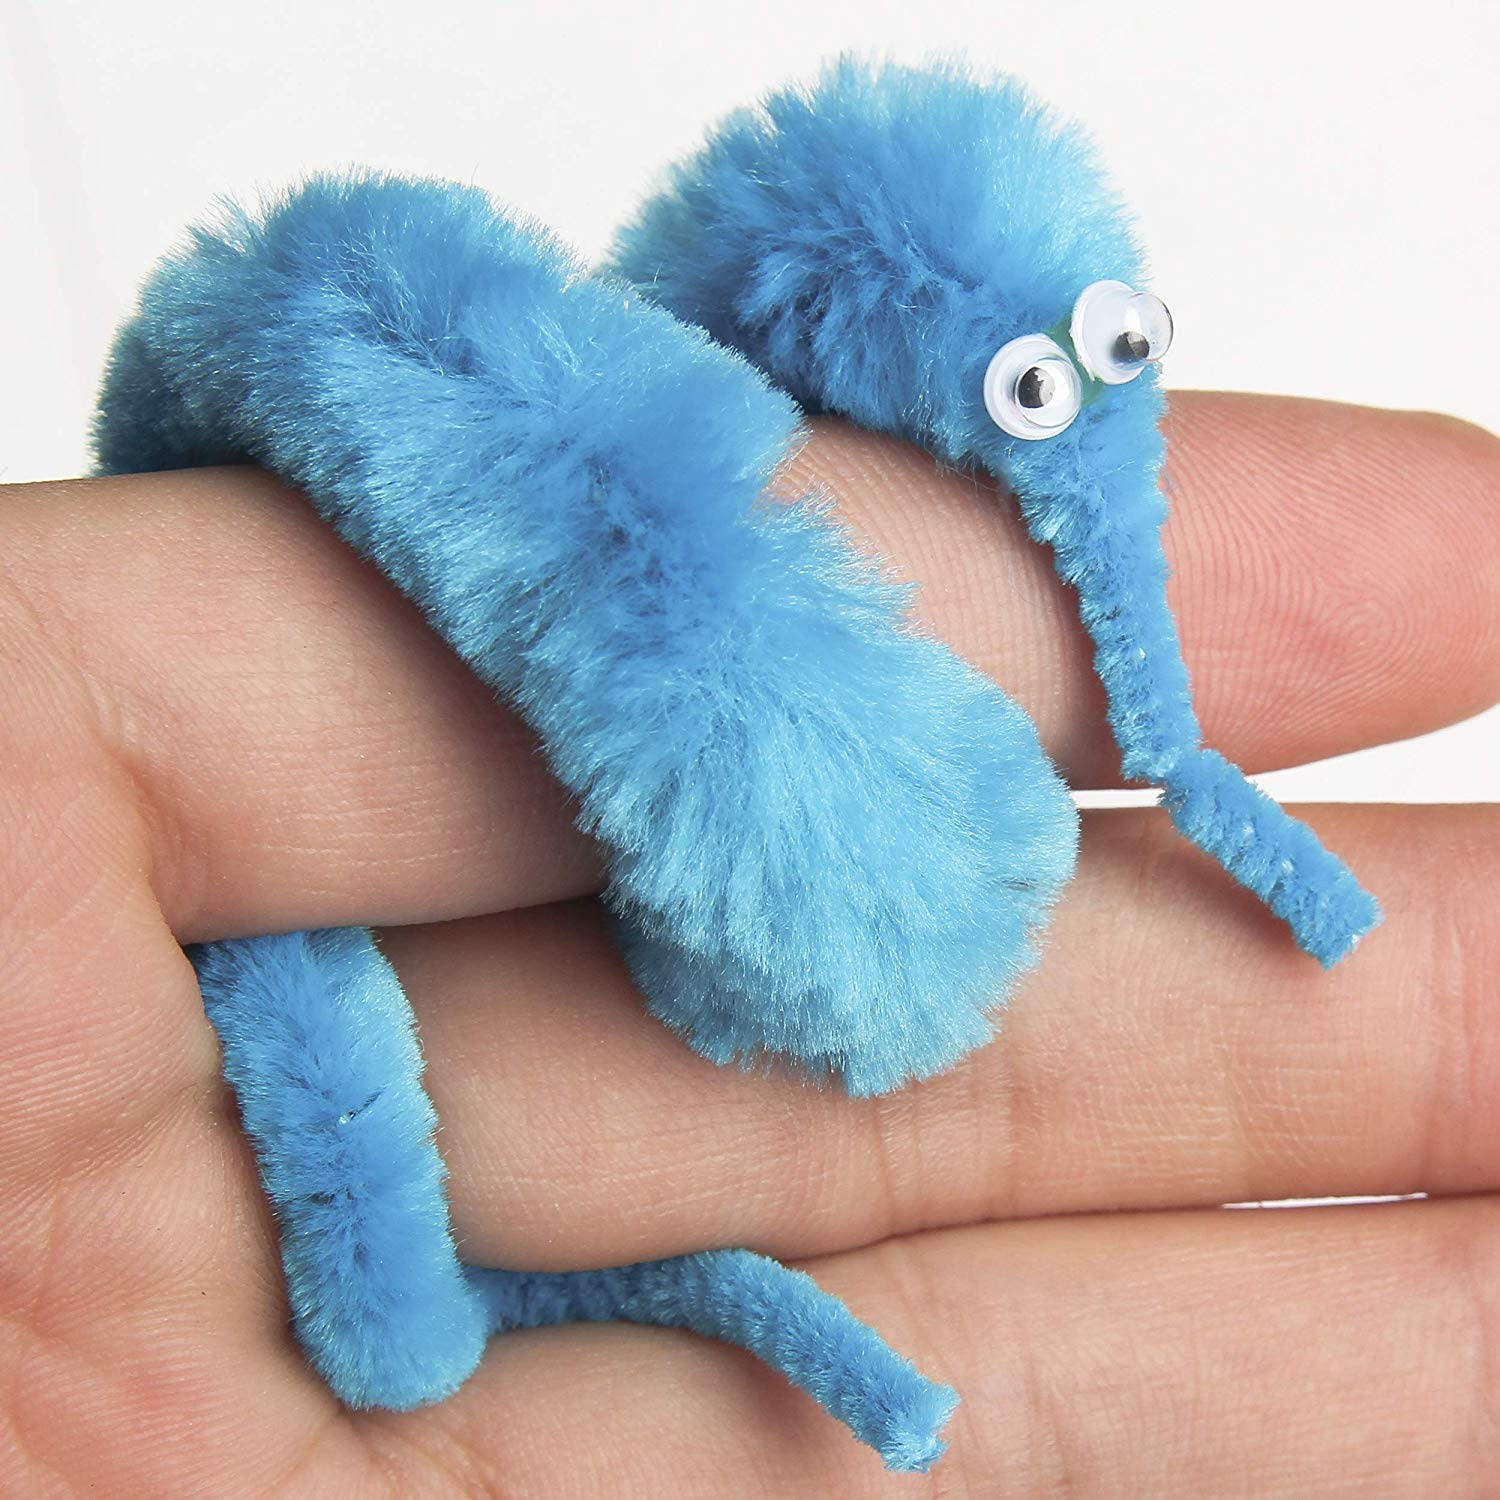 48 Pieces Magic Wiggly Twisty Fuzzy Worm Magic Worm Toys for Carnival Party Favors VAGYD Magic Worm